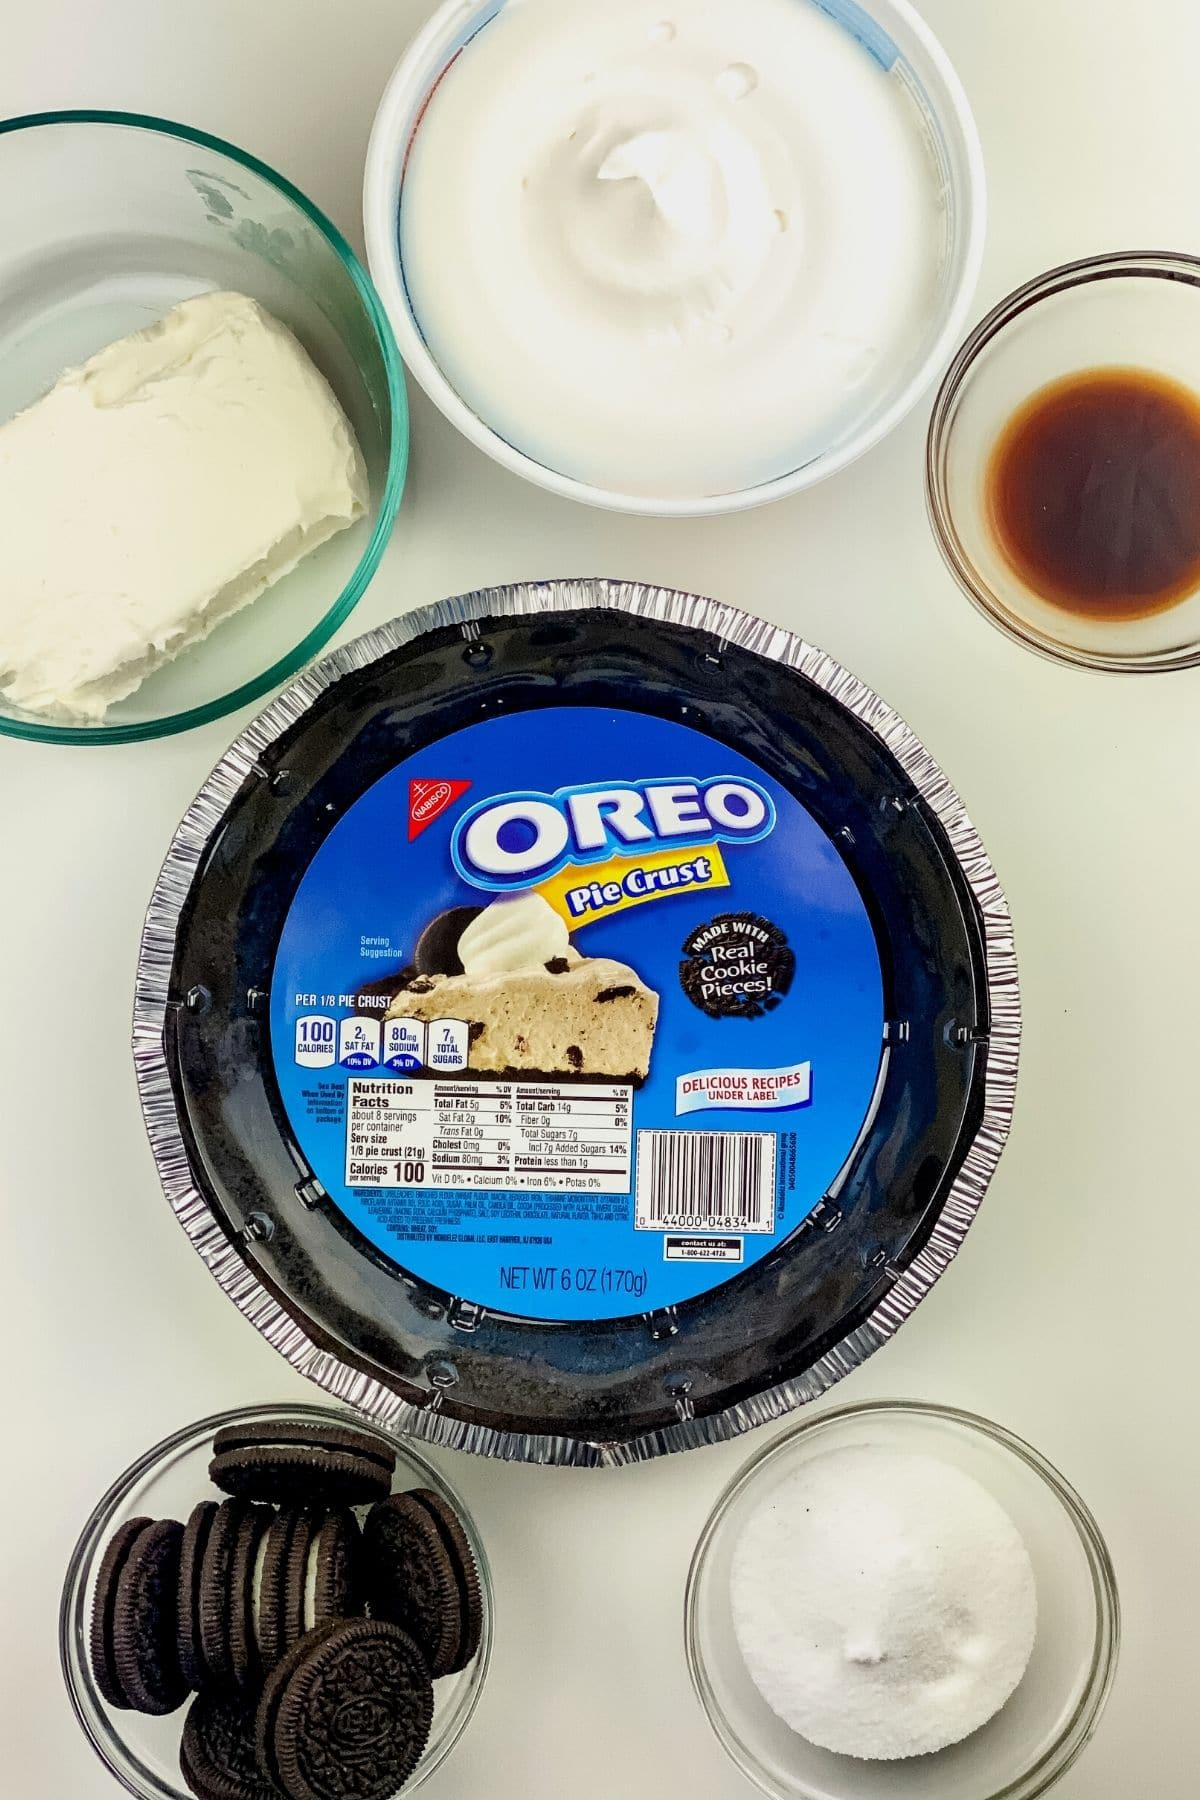 No bake oreo cheesecake ingredients